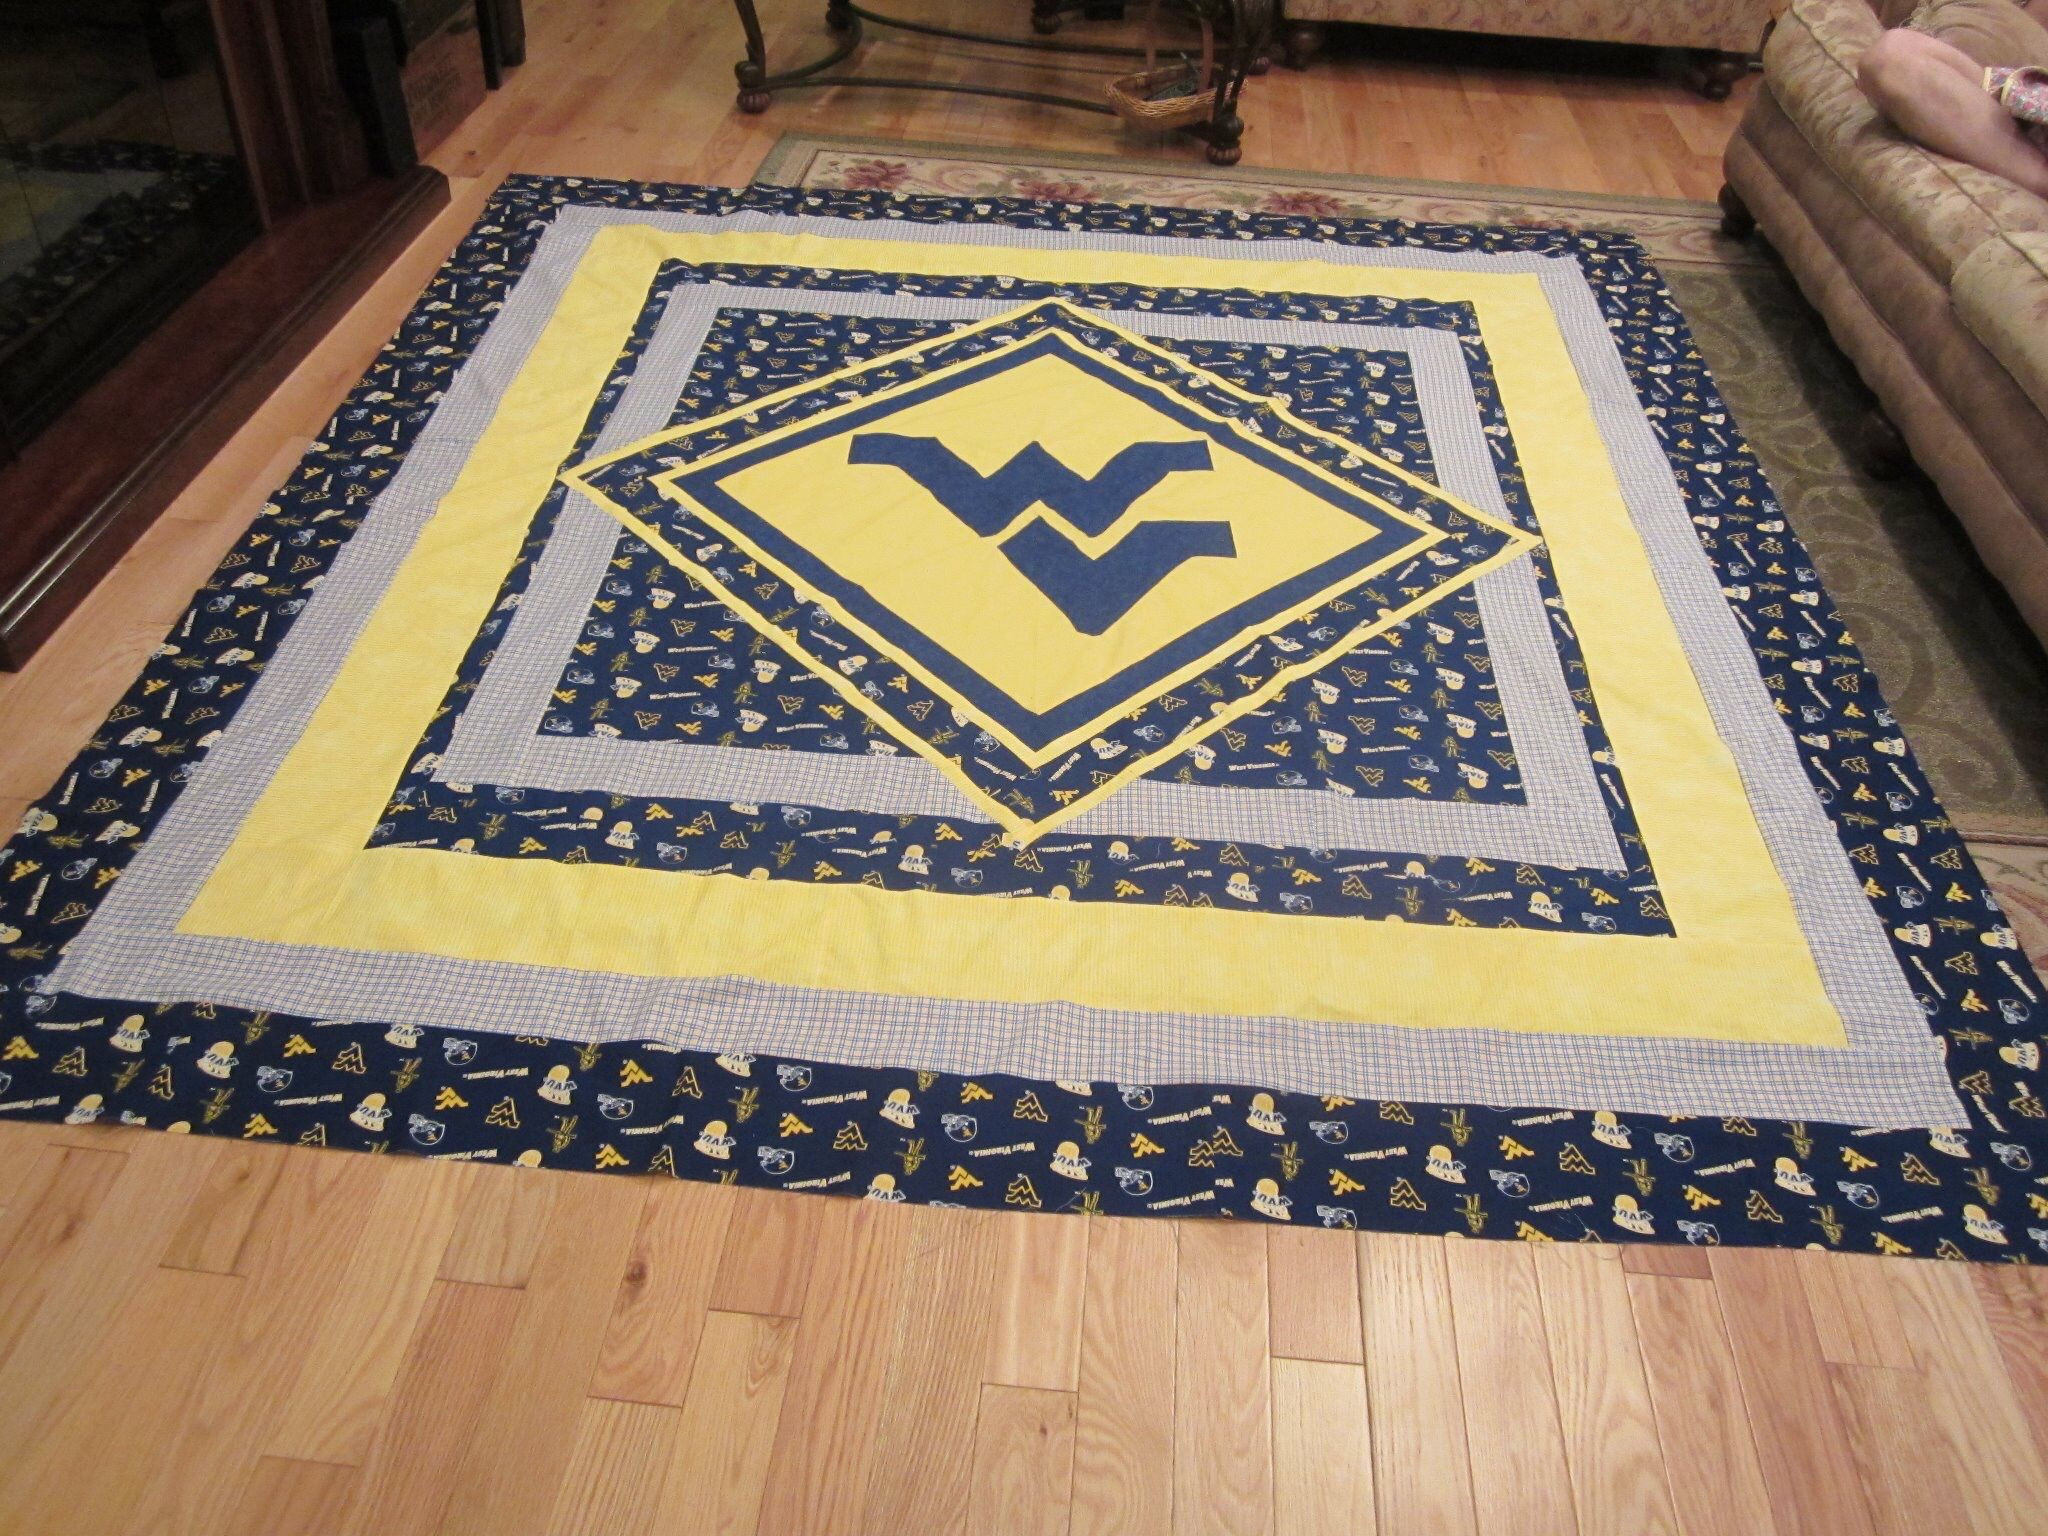 hardwood flooring auction calgary of snuggle up in a wvu quilt wvu mountaineers letsgomountaineers regarding snuggle up in a wvu quilt wvu mountaineers letsgomountaineers westvirginia westvirginiauniversity morgantown